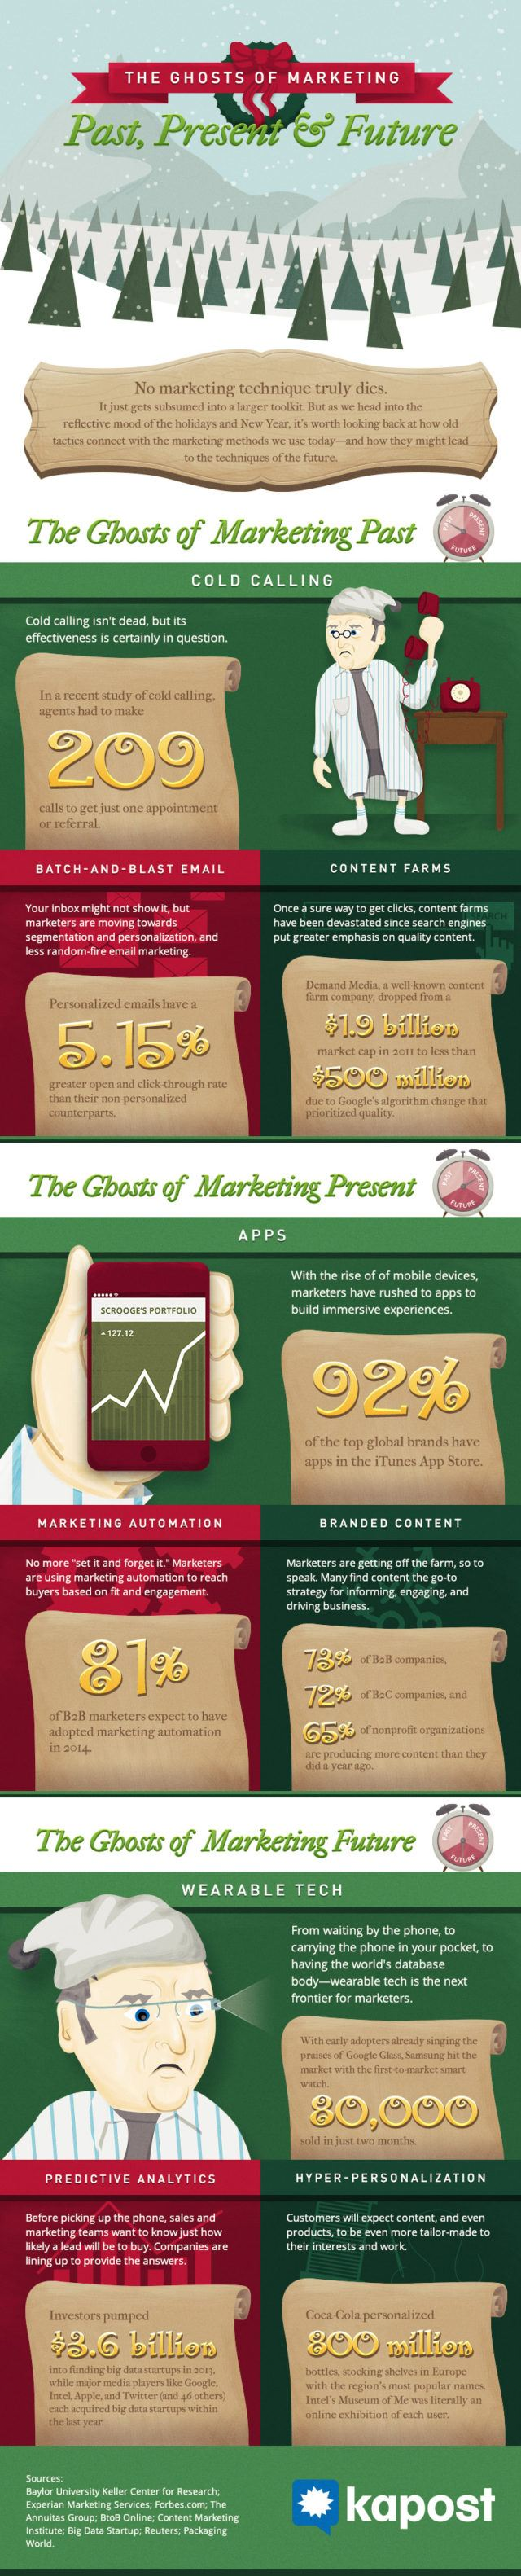 Ghosts of Marketing Past, Present and Future